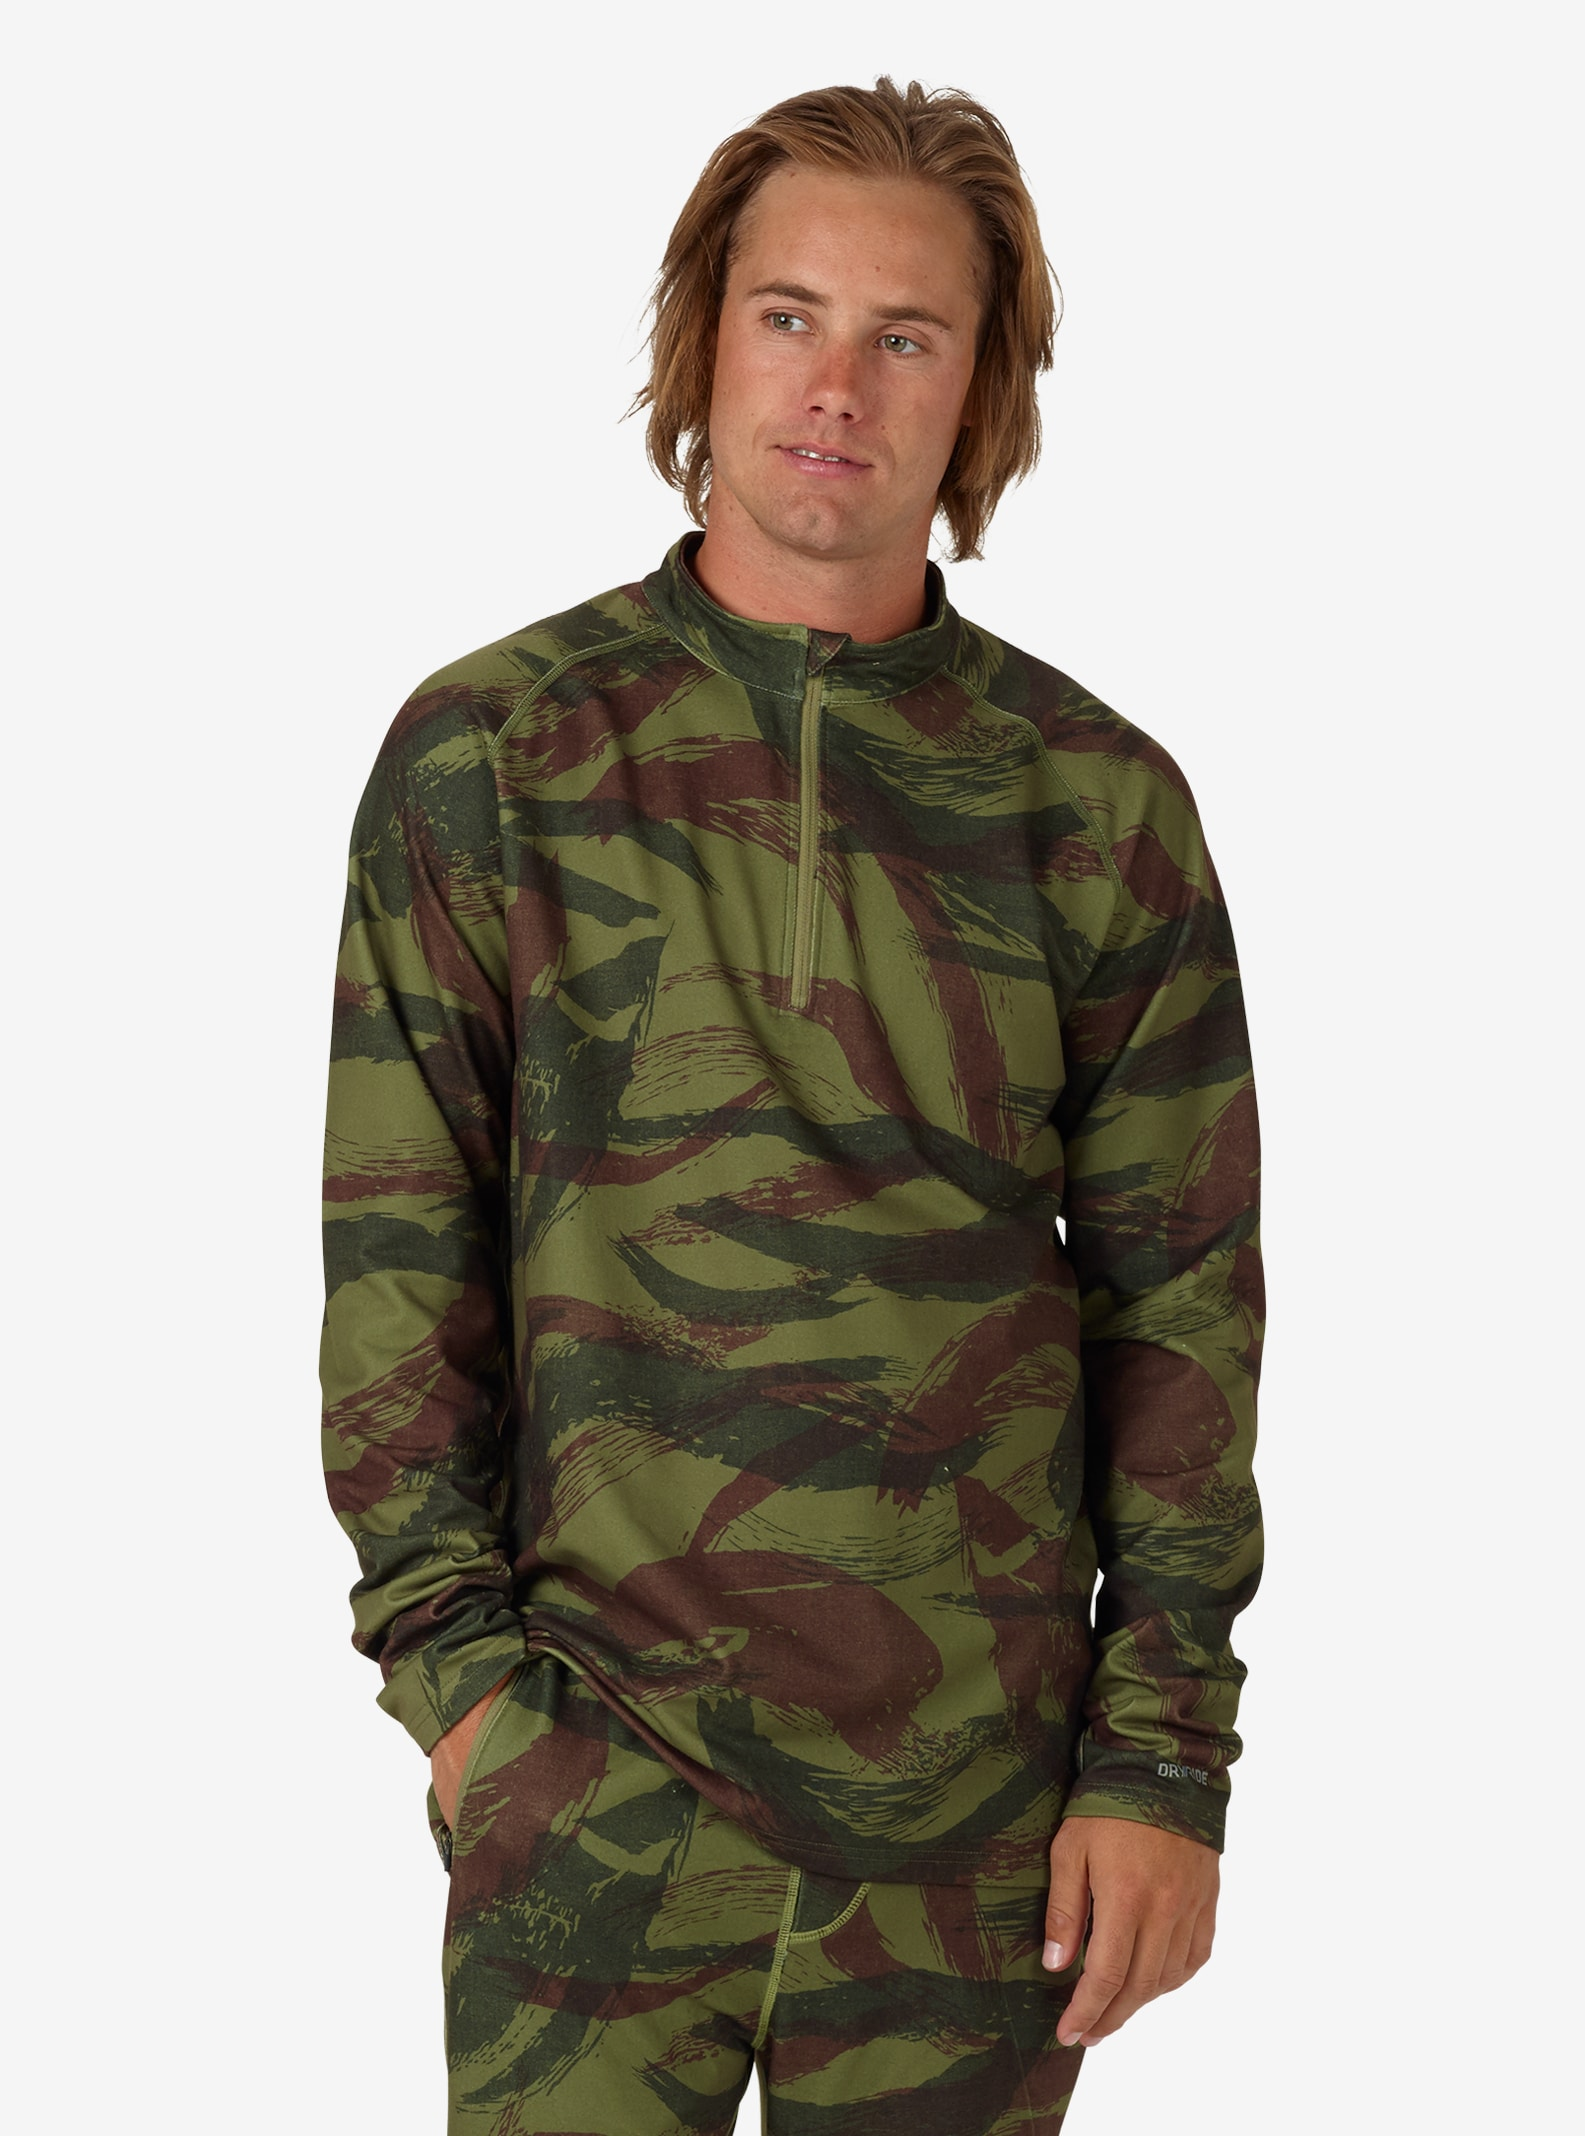 Men's Burton Expedition 1/4 Zip Base Layer shown in Brush Camo